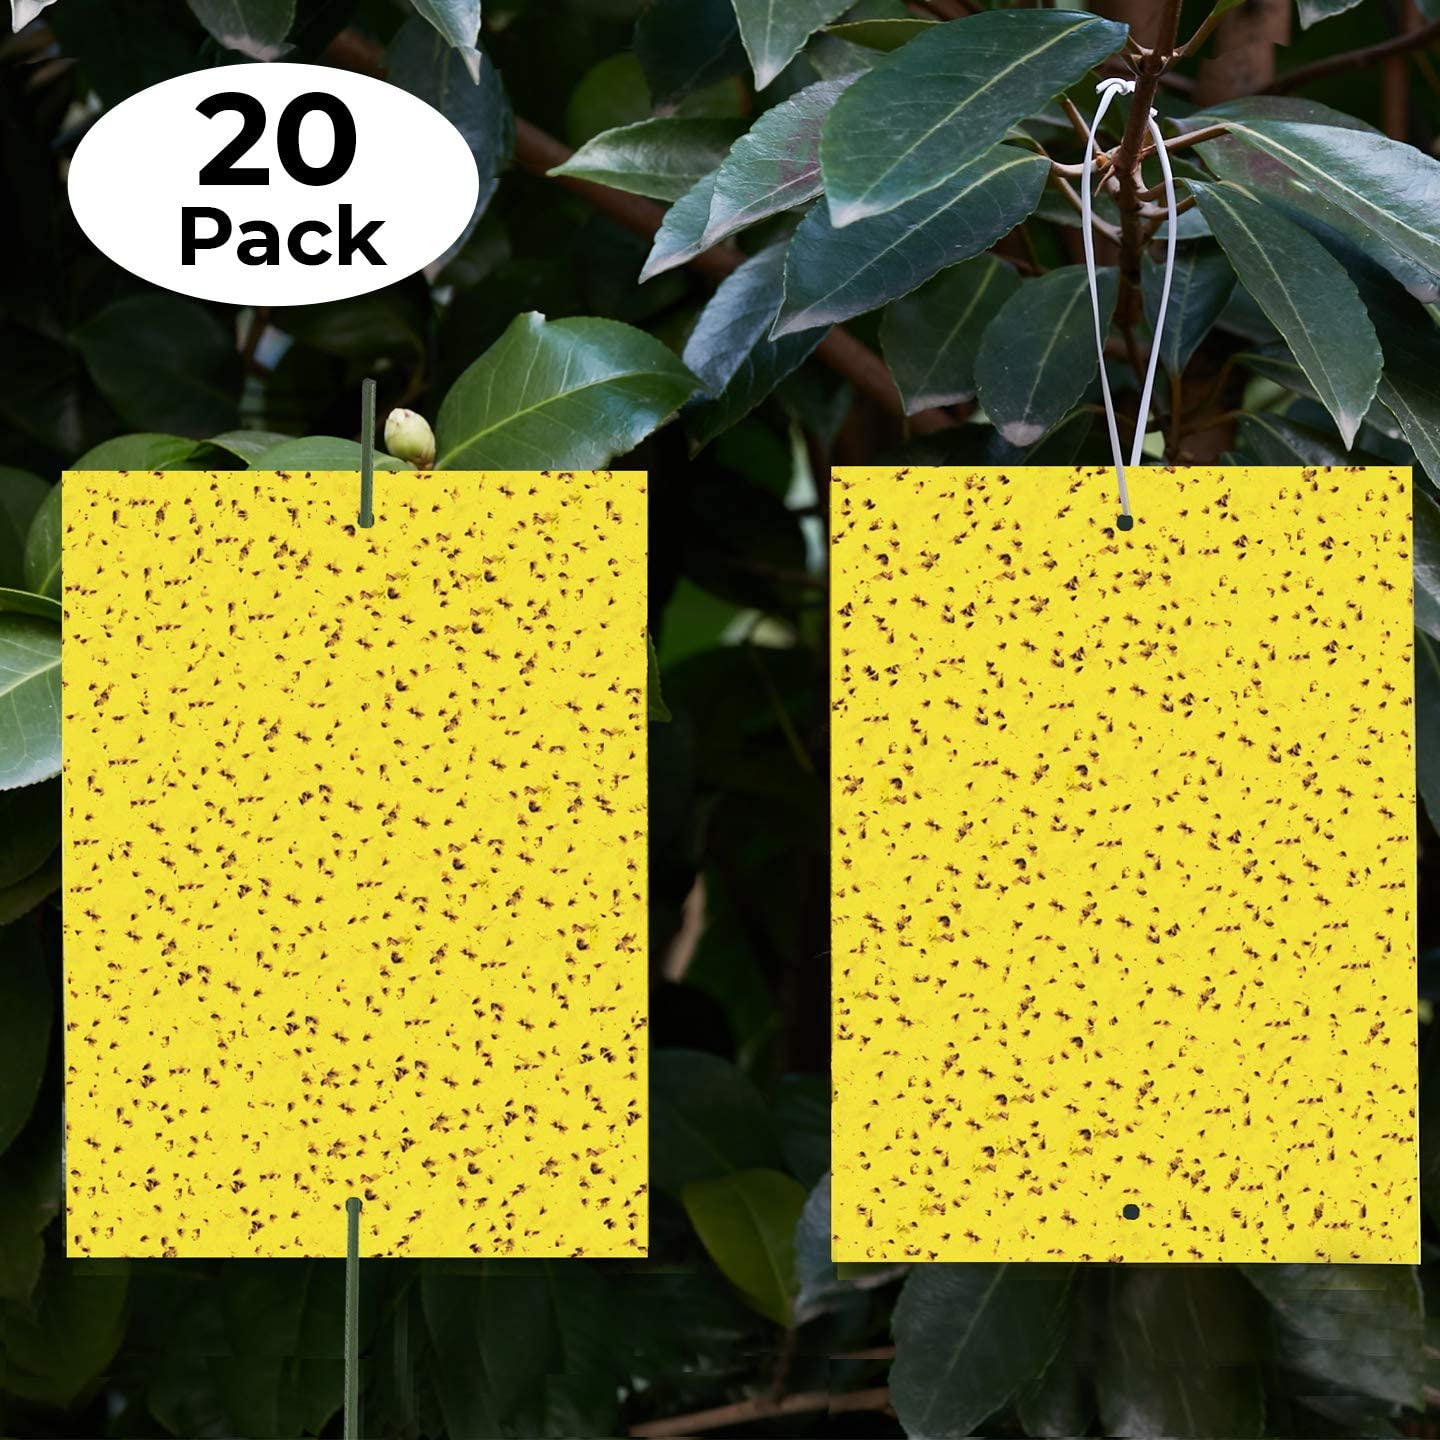 Yellow Sticky Traps (20 Pack) - Gnat Trap - Gnat Killer - Fruit Fly Paper - Fly Traps Indoor Sticky - Yellow Sticky Traps Fungus Gnat - Sticky Traps Insects - Fruit Flies - Dual-Sided - Indoor/Outdoor